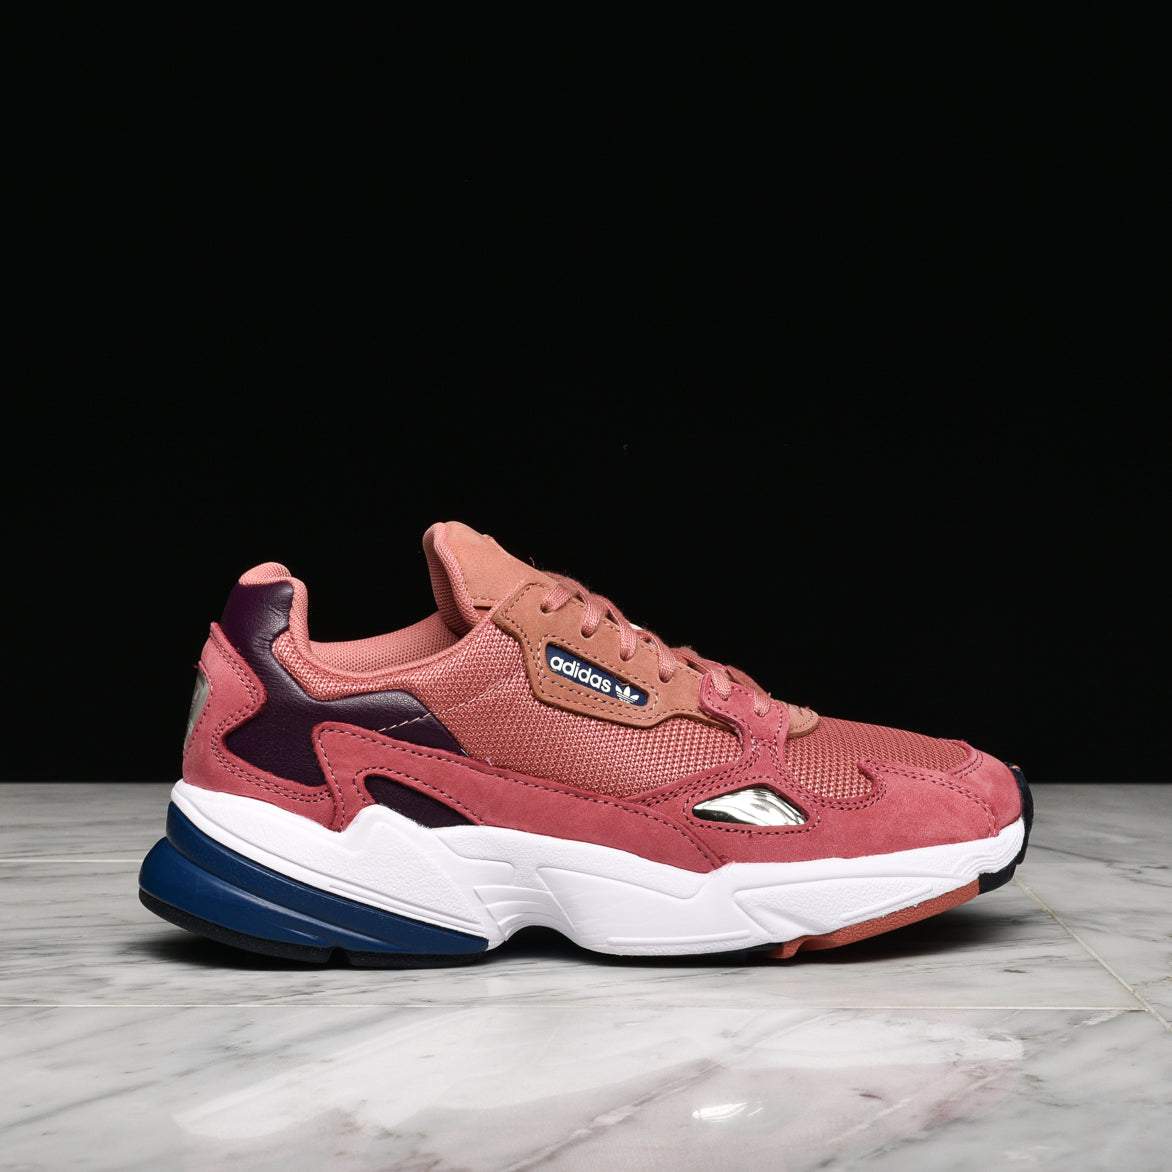 9ab9d72444a WMNS FALCON - RAW PINK